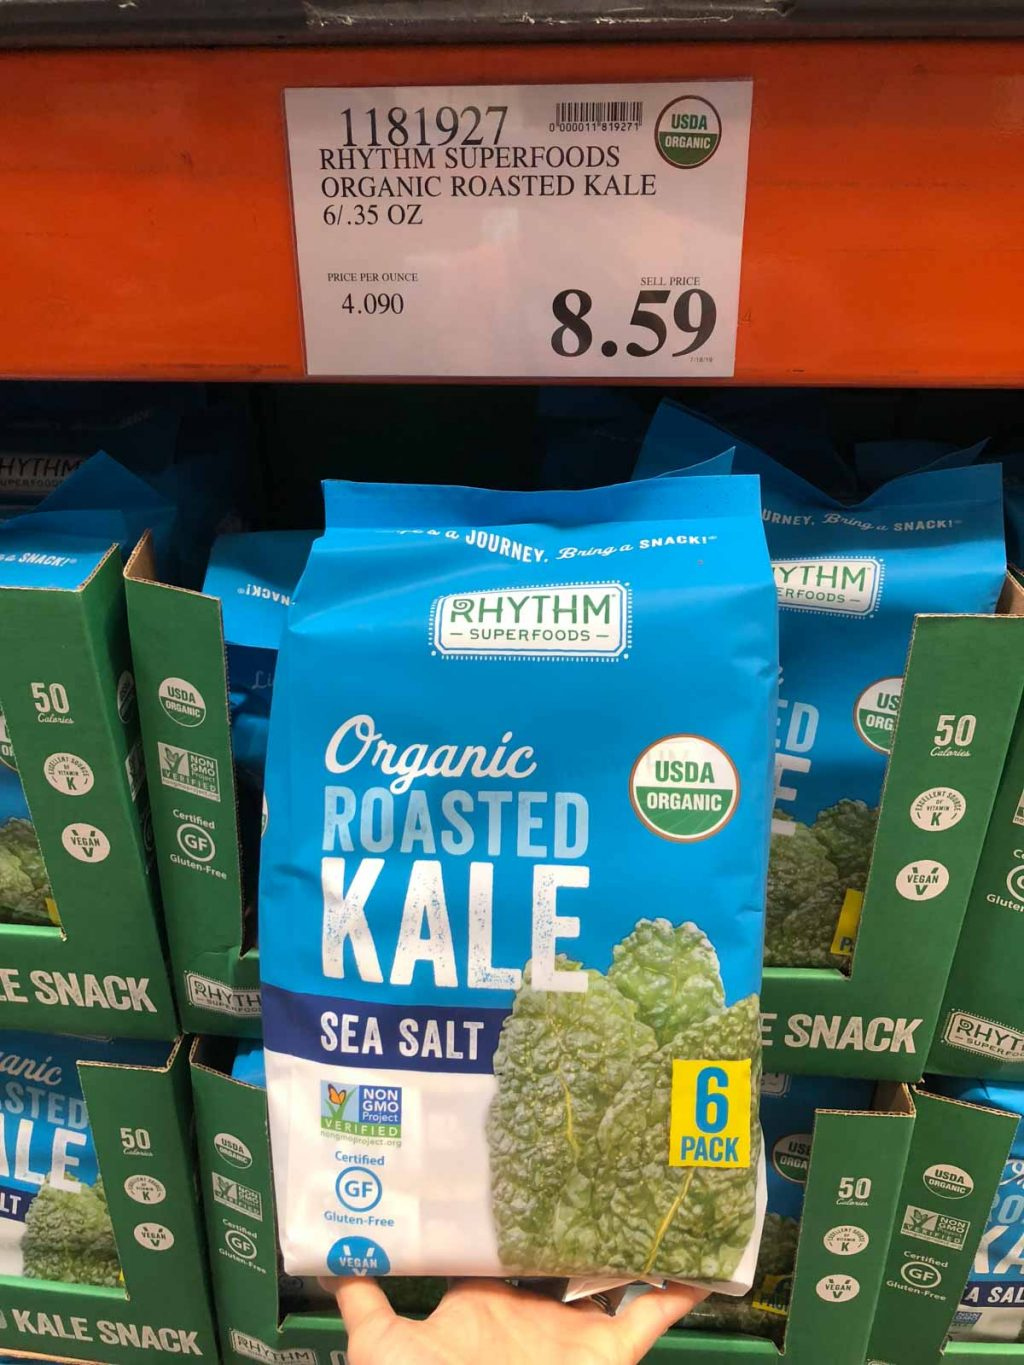 A hand holding a blue container of Rhythm organic vegan roasted kale snacks for $8.59 at Costco.